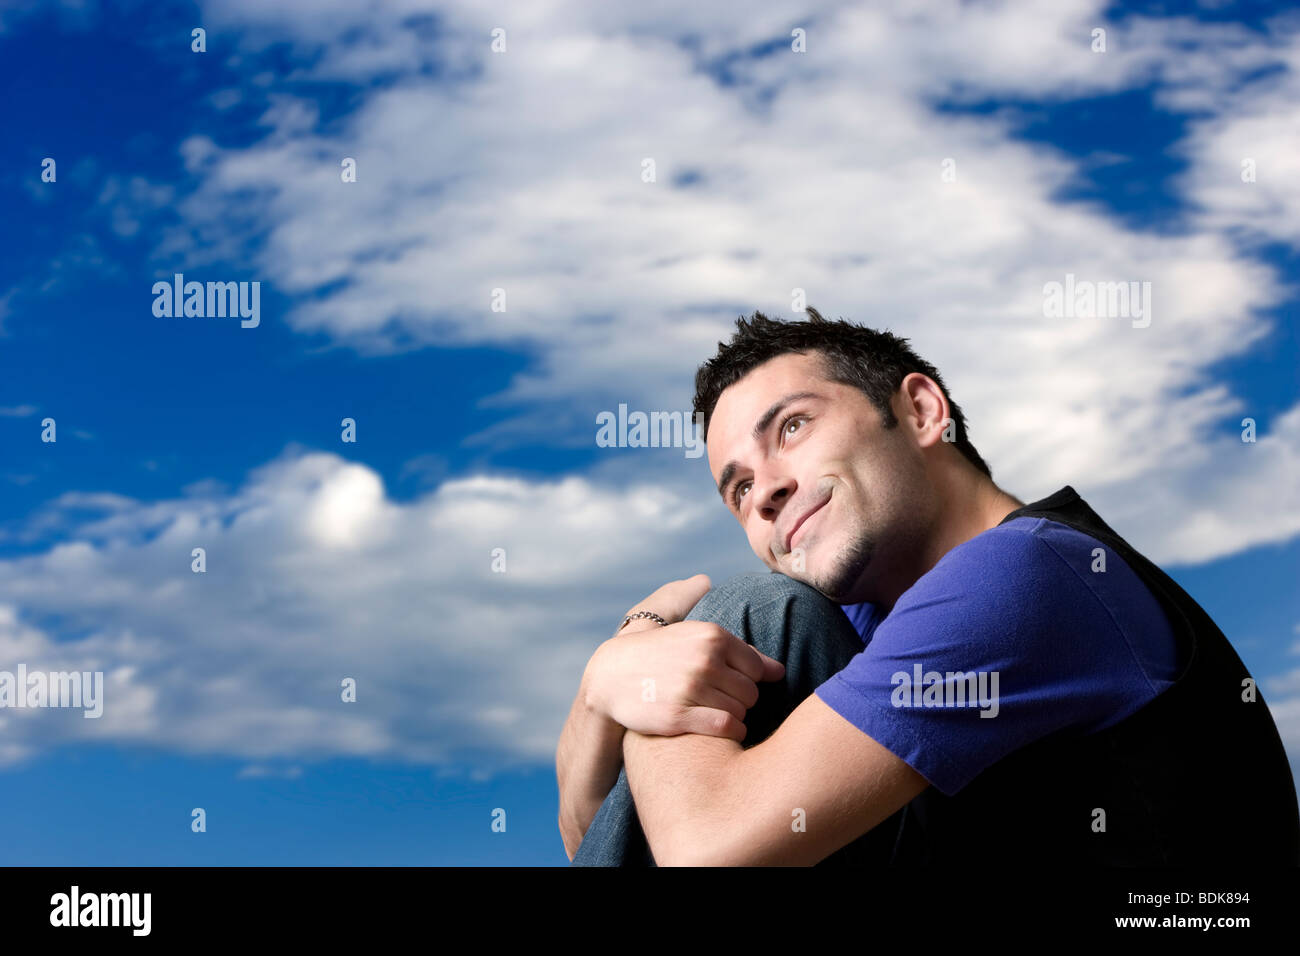 Daydreaming Man Stock Photo 25624512